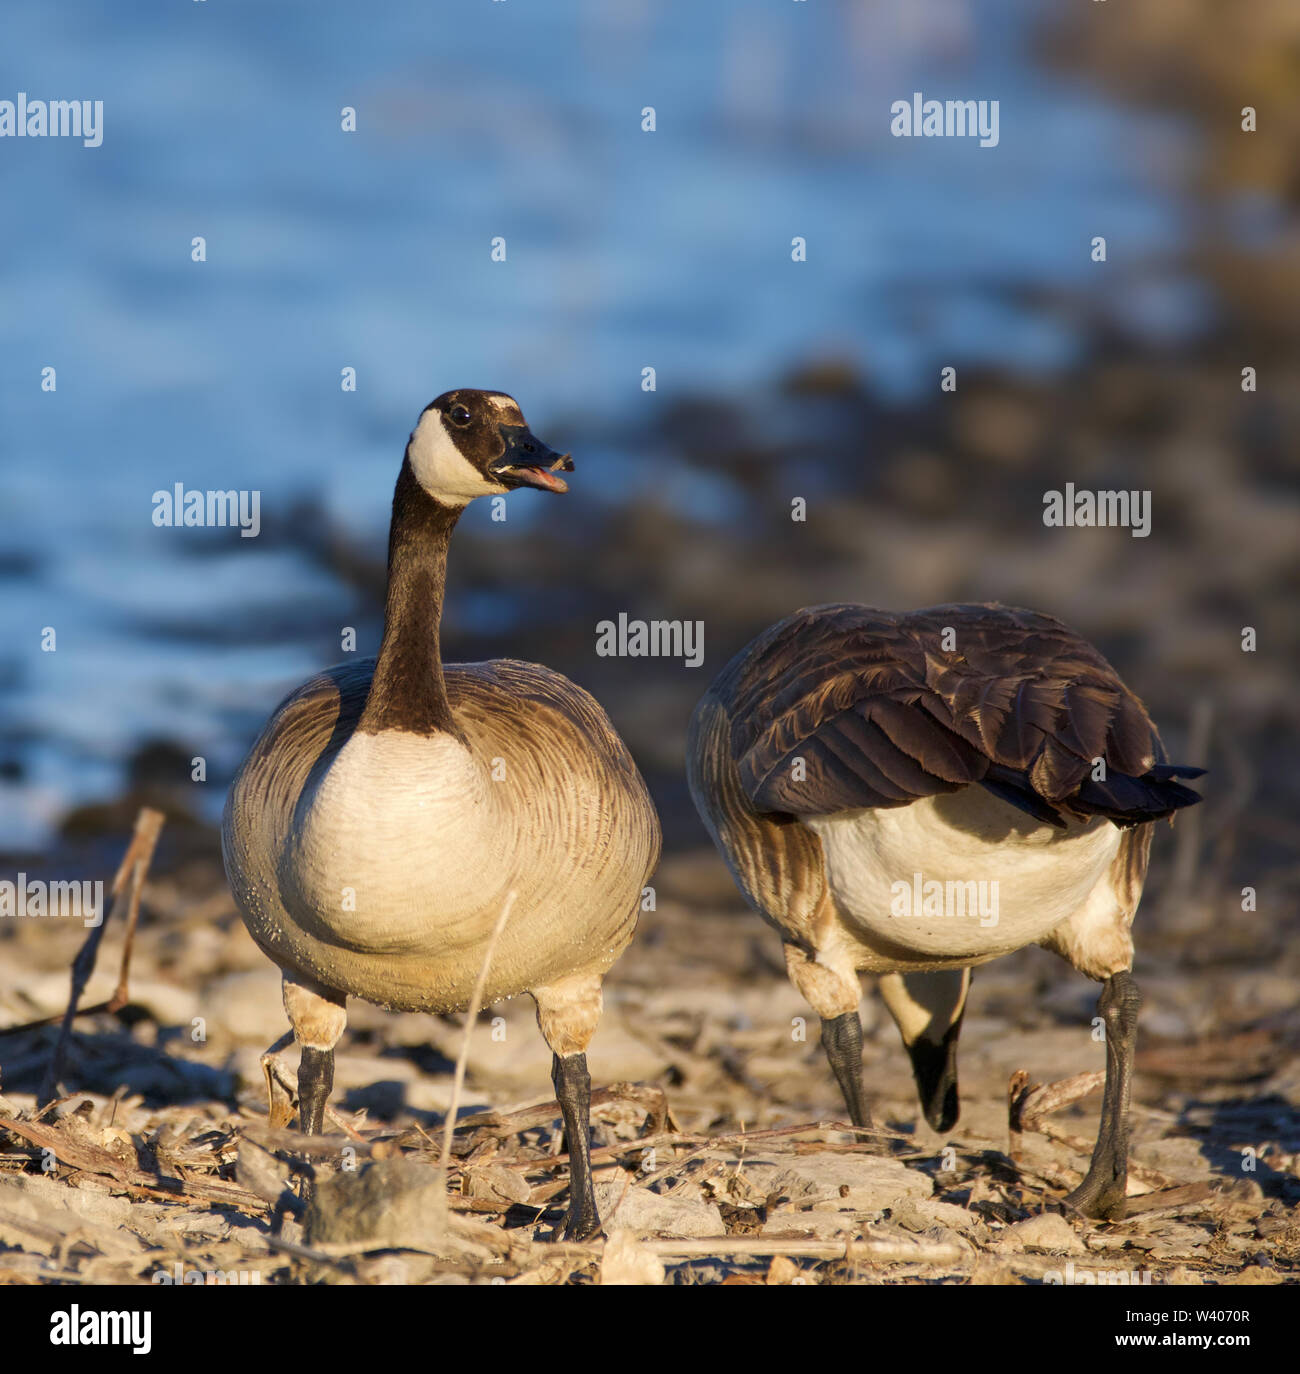 Two Geese on the Lakeshore - Stock Image